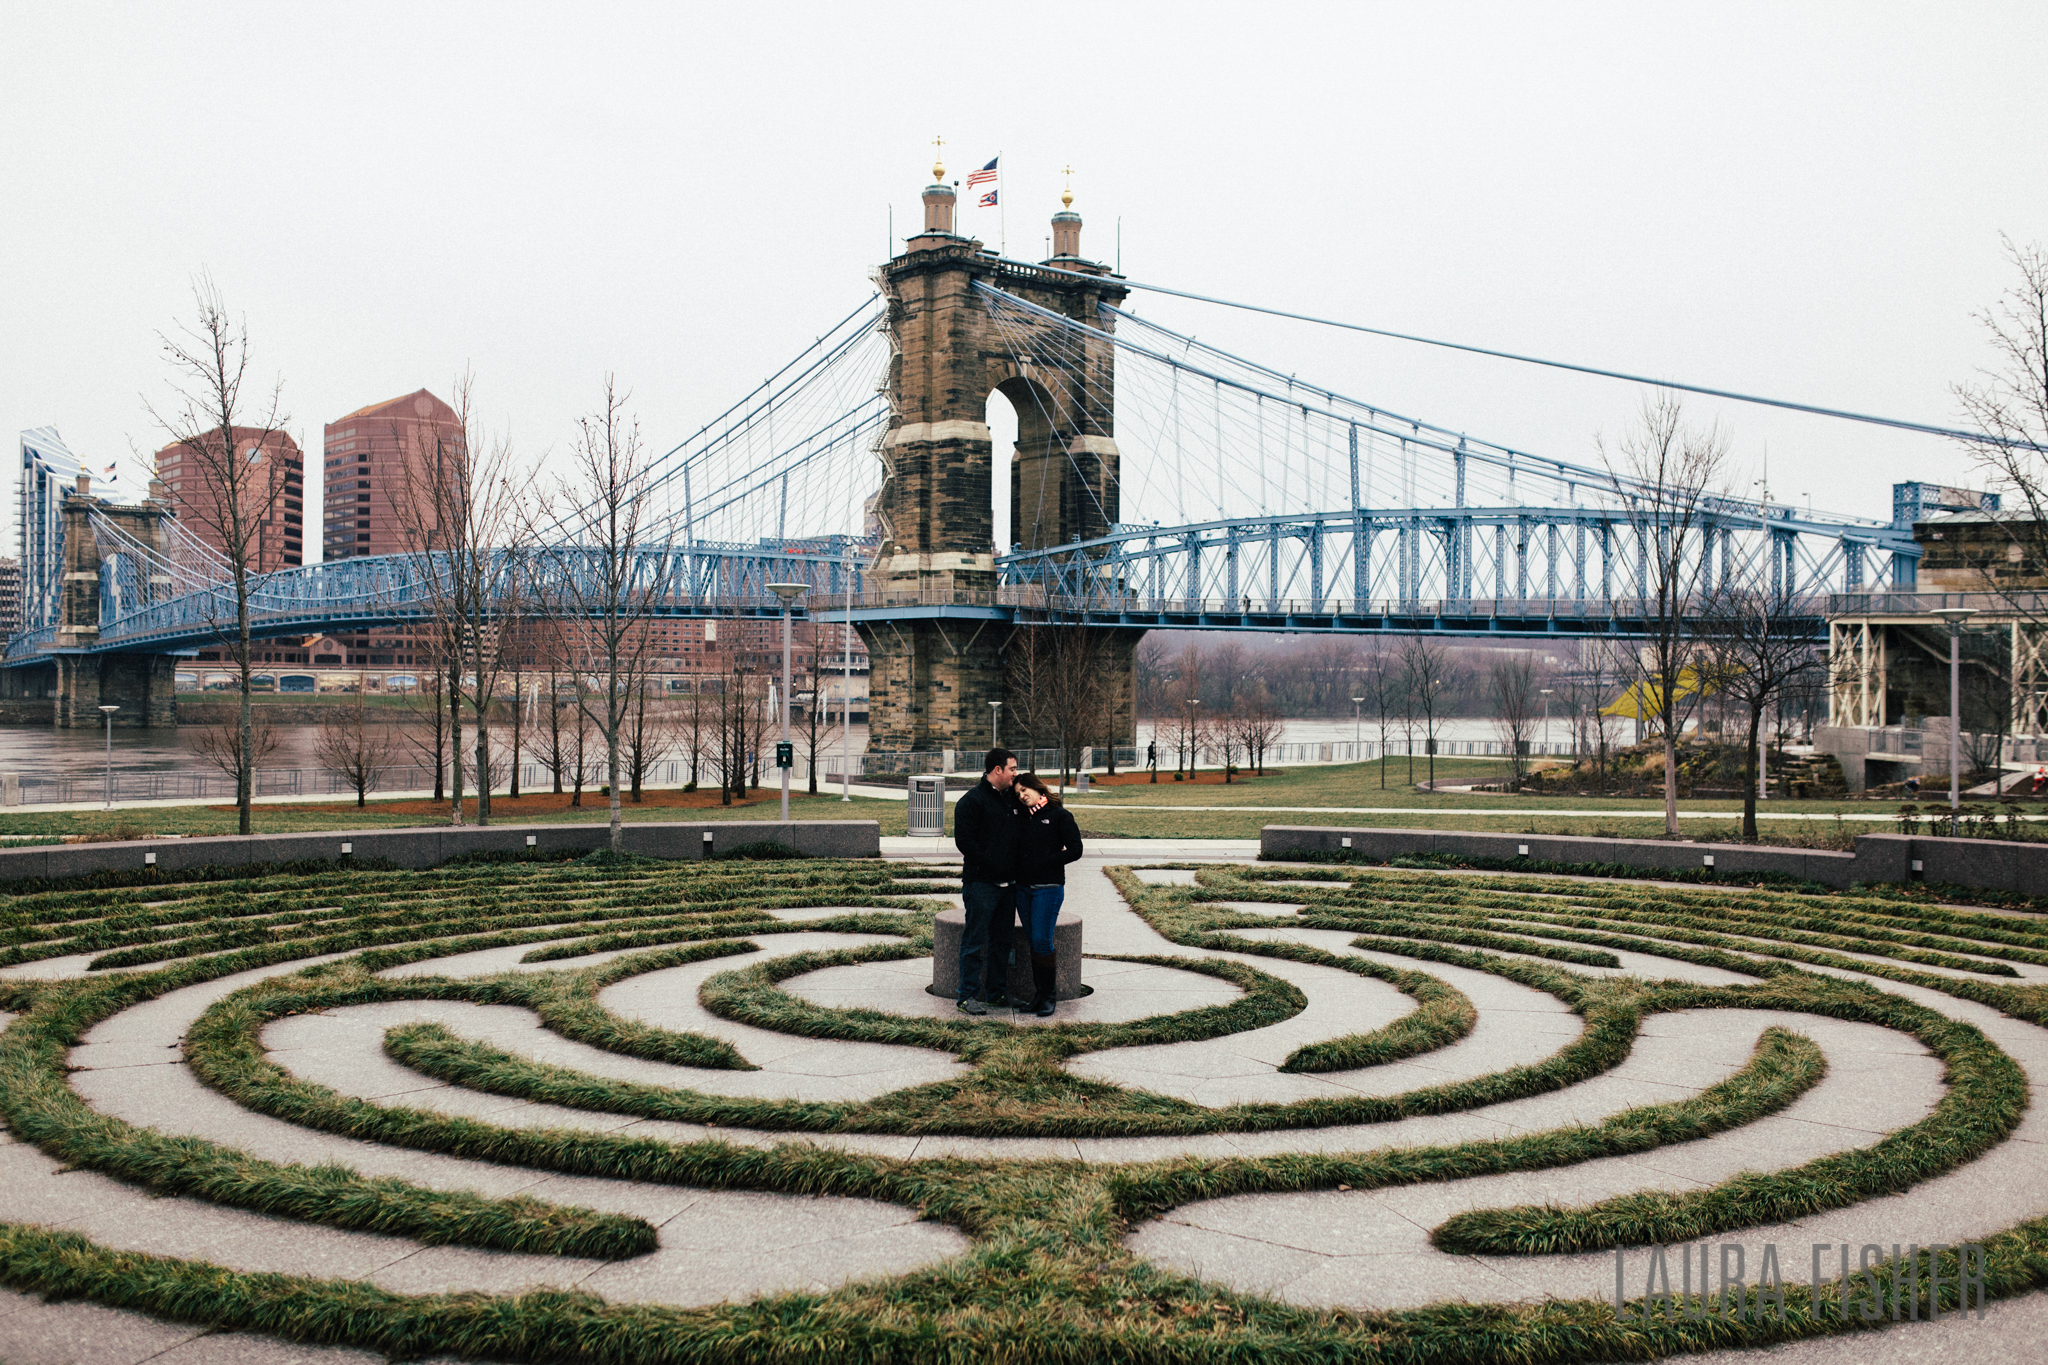 cincinnati-smale-park-OTR-engagement-photography-laura-fisher-0003.jpg